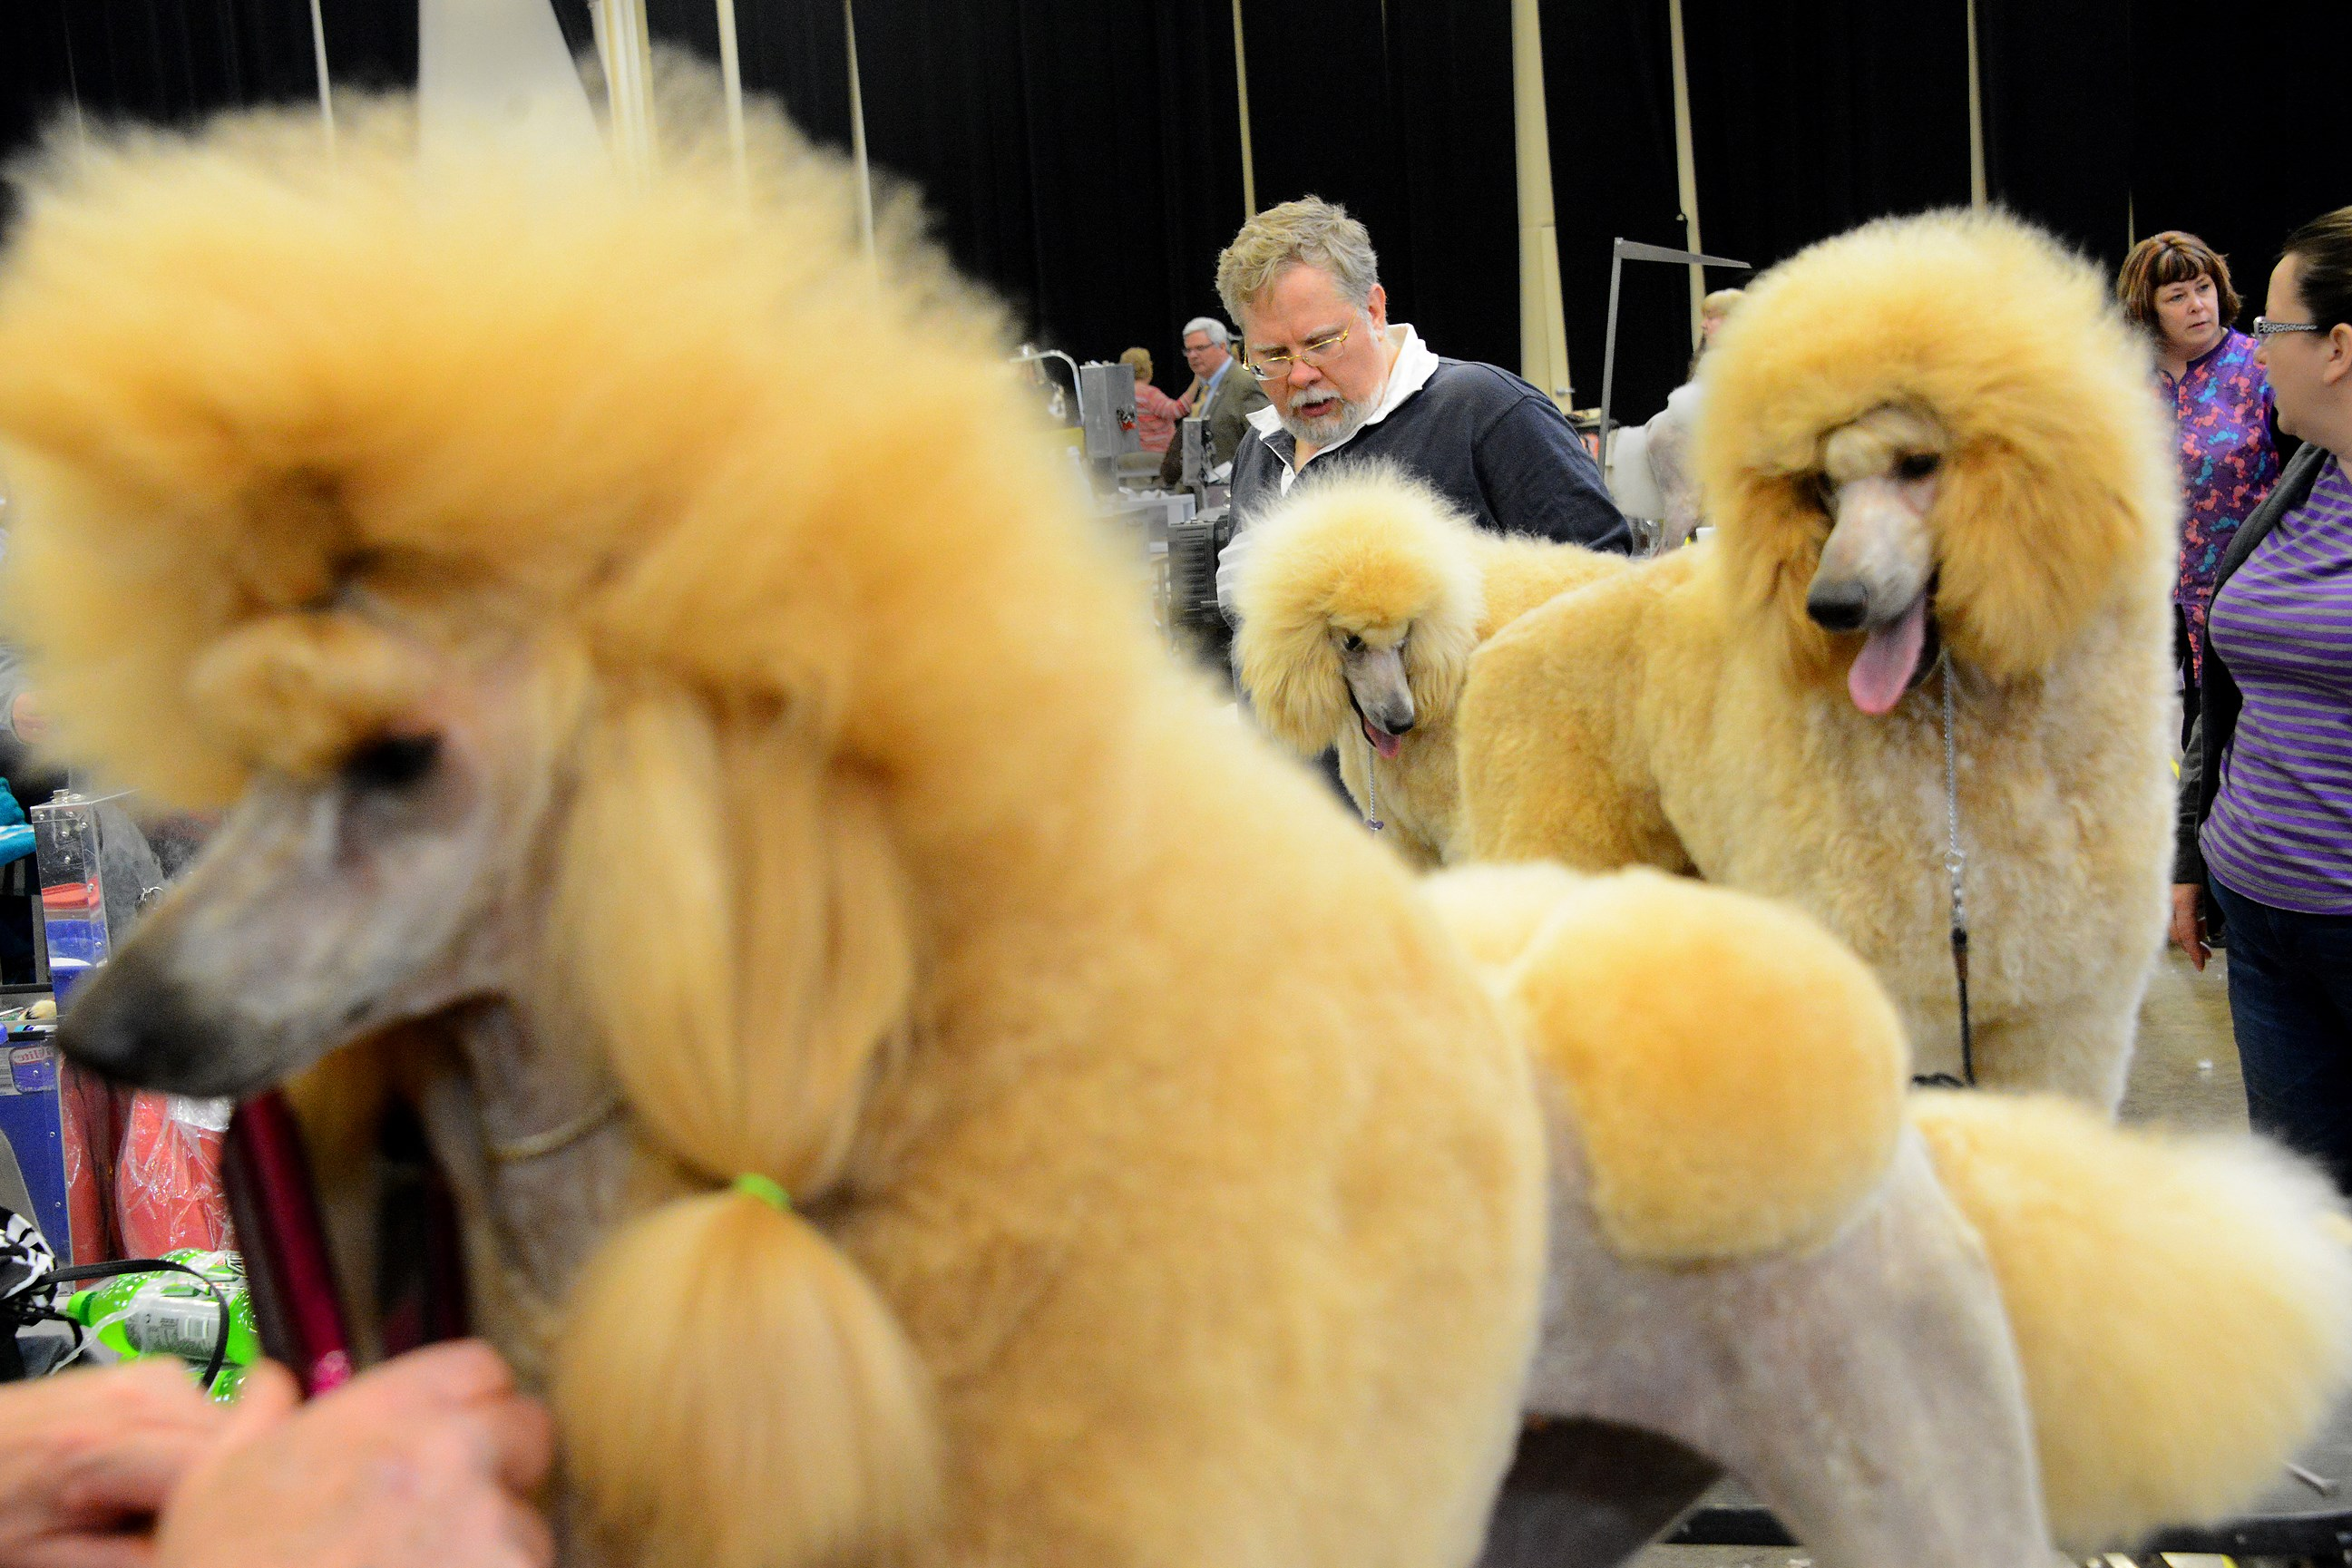 Groomer Mark Gresh of Hopewell tends to 9-month-old Elizabeth, an apricot standard poodle, in the Western Pennsylvania Kennel Association dog show Saturday at Monroeville Convention Center. Terry Farley of Washington, Pa., owns all three poodles. At left is Taylor, 2, and Cullin, 6 months old.